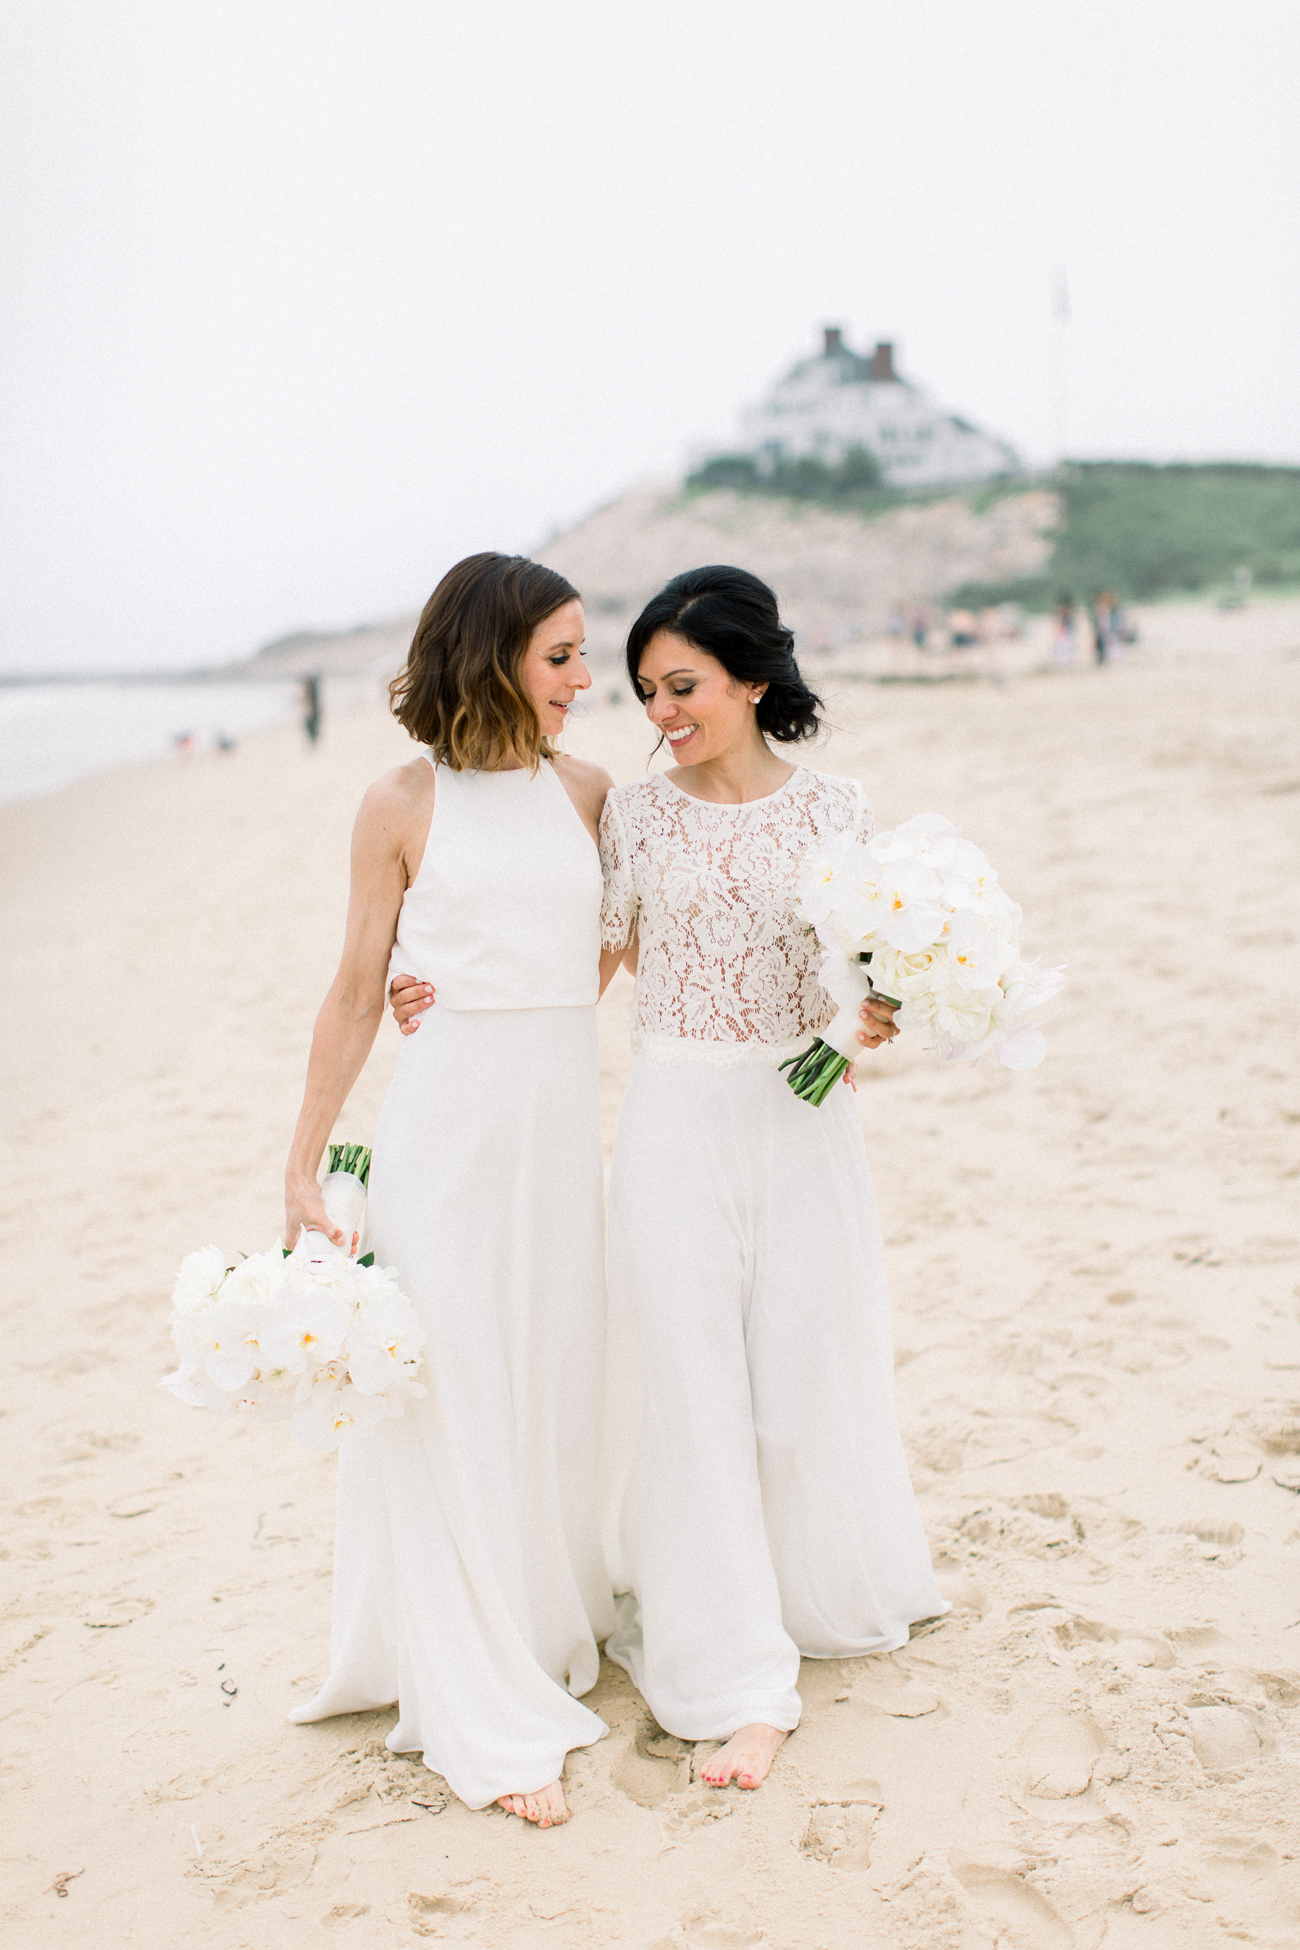 These Brides Threw a Cheerful Orange-and-White Wedding in Rhode Island